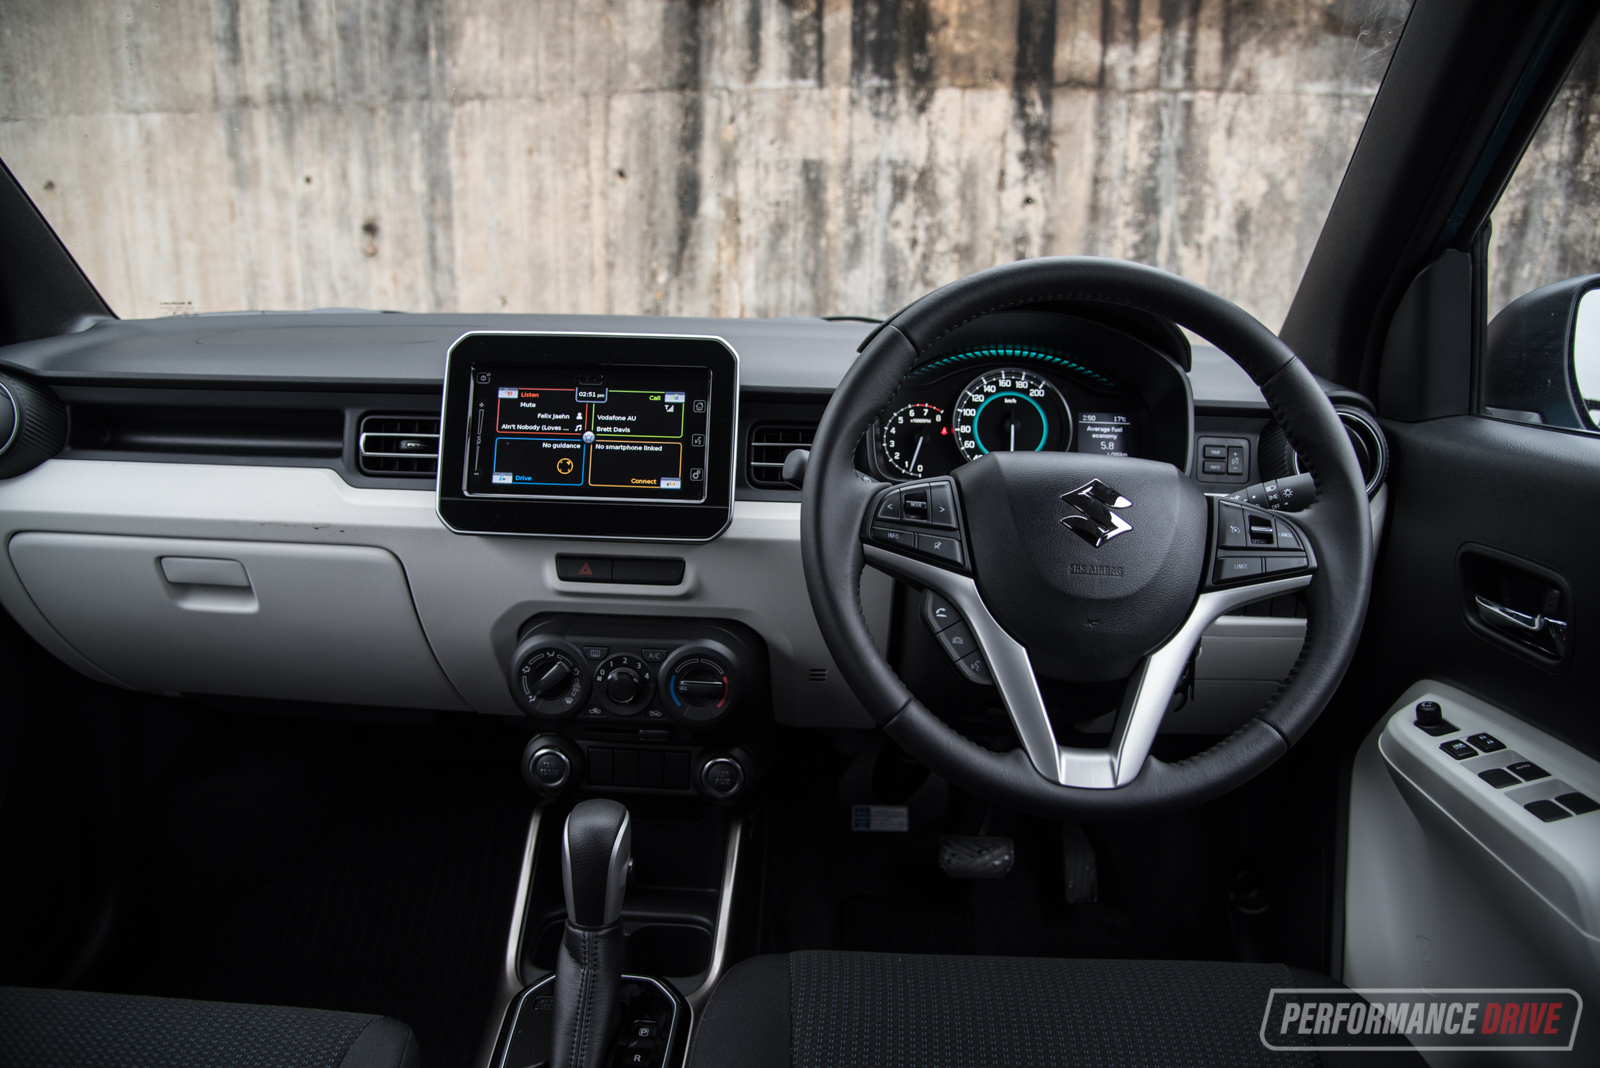 Awesome All Ignis Models In Australia Come With A Litre Kwnm Engine Tied To Fivespeed Manual Available The Gl Or Cvt Automatic